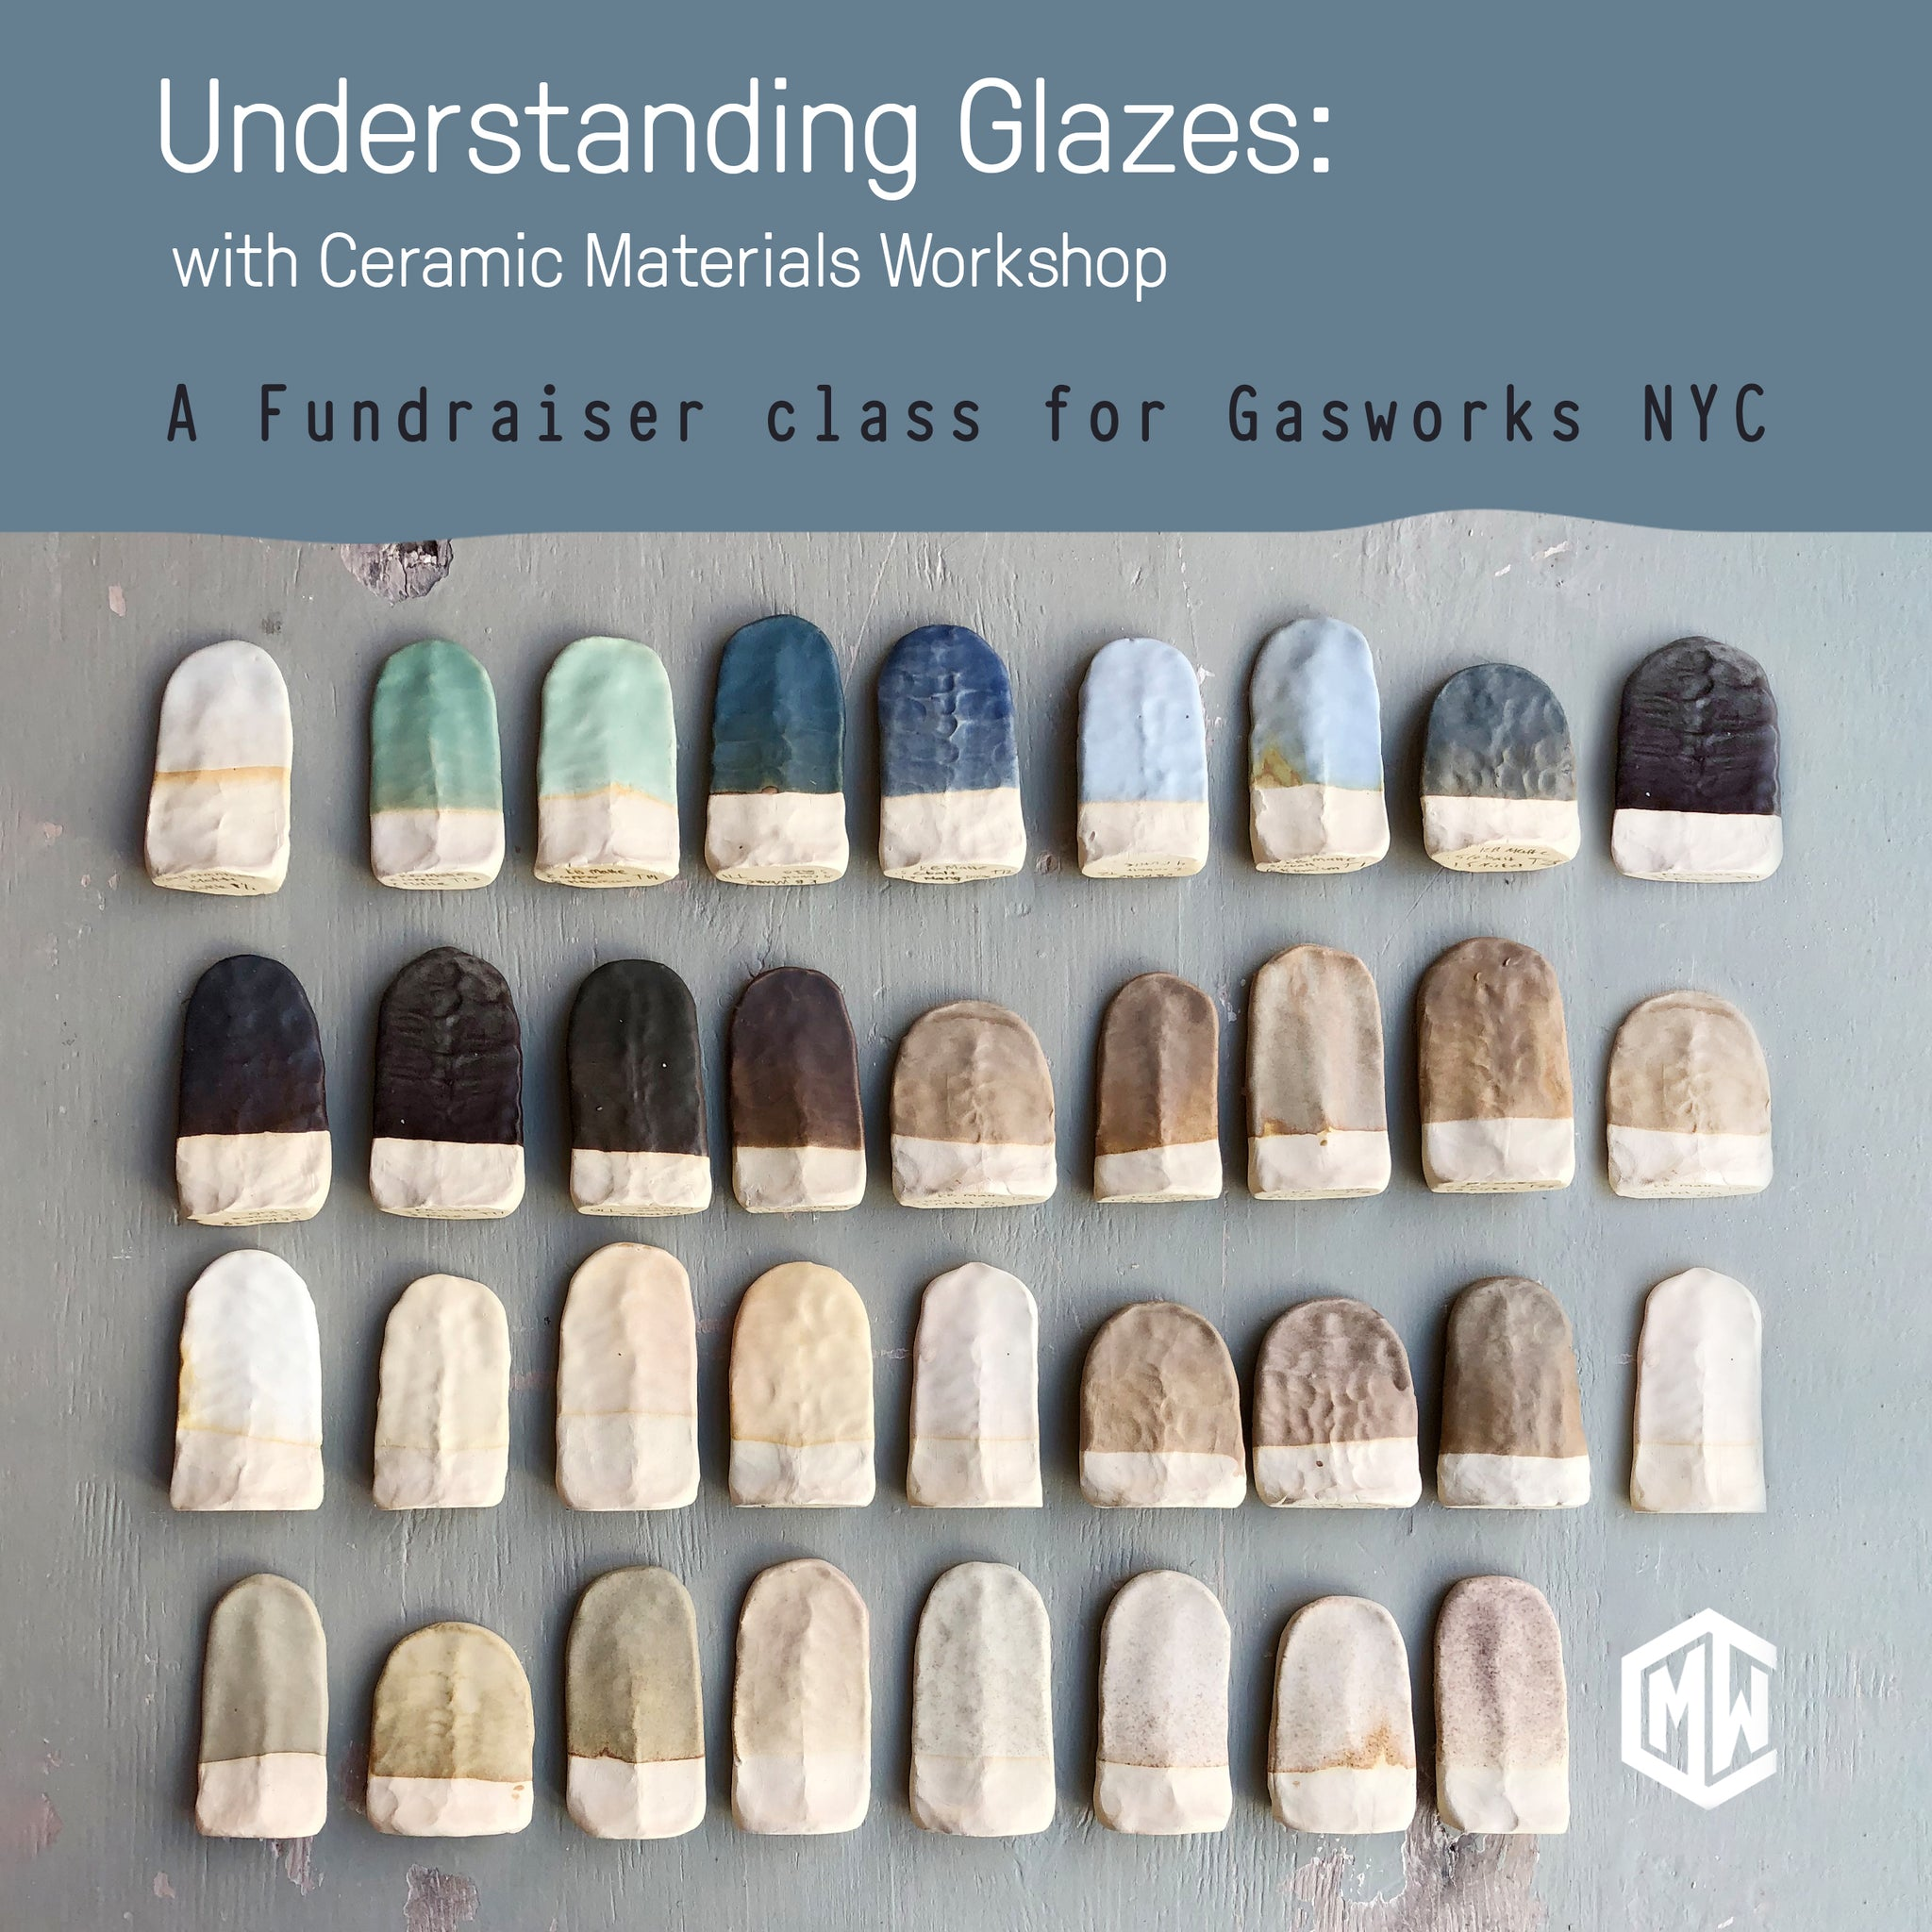 Understanding Glazes: a fundraiser class for Gasworks NYC with Ceramic Materials Workshop